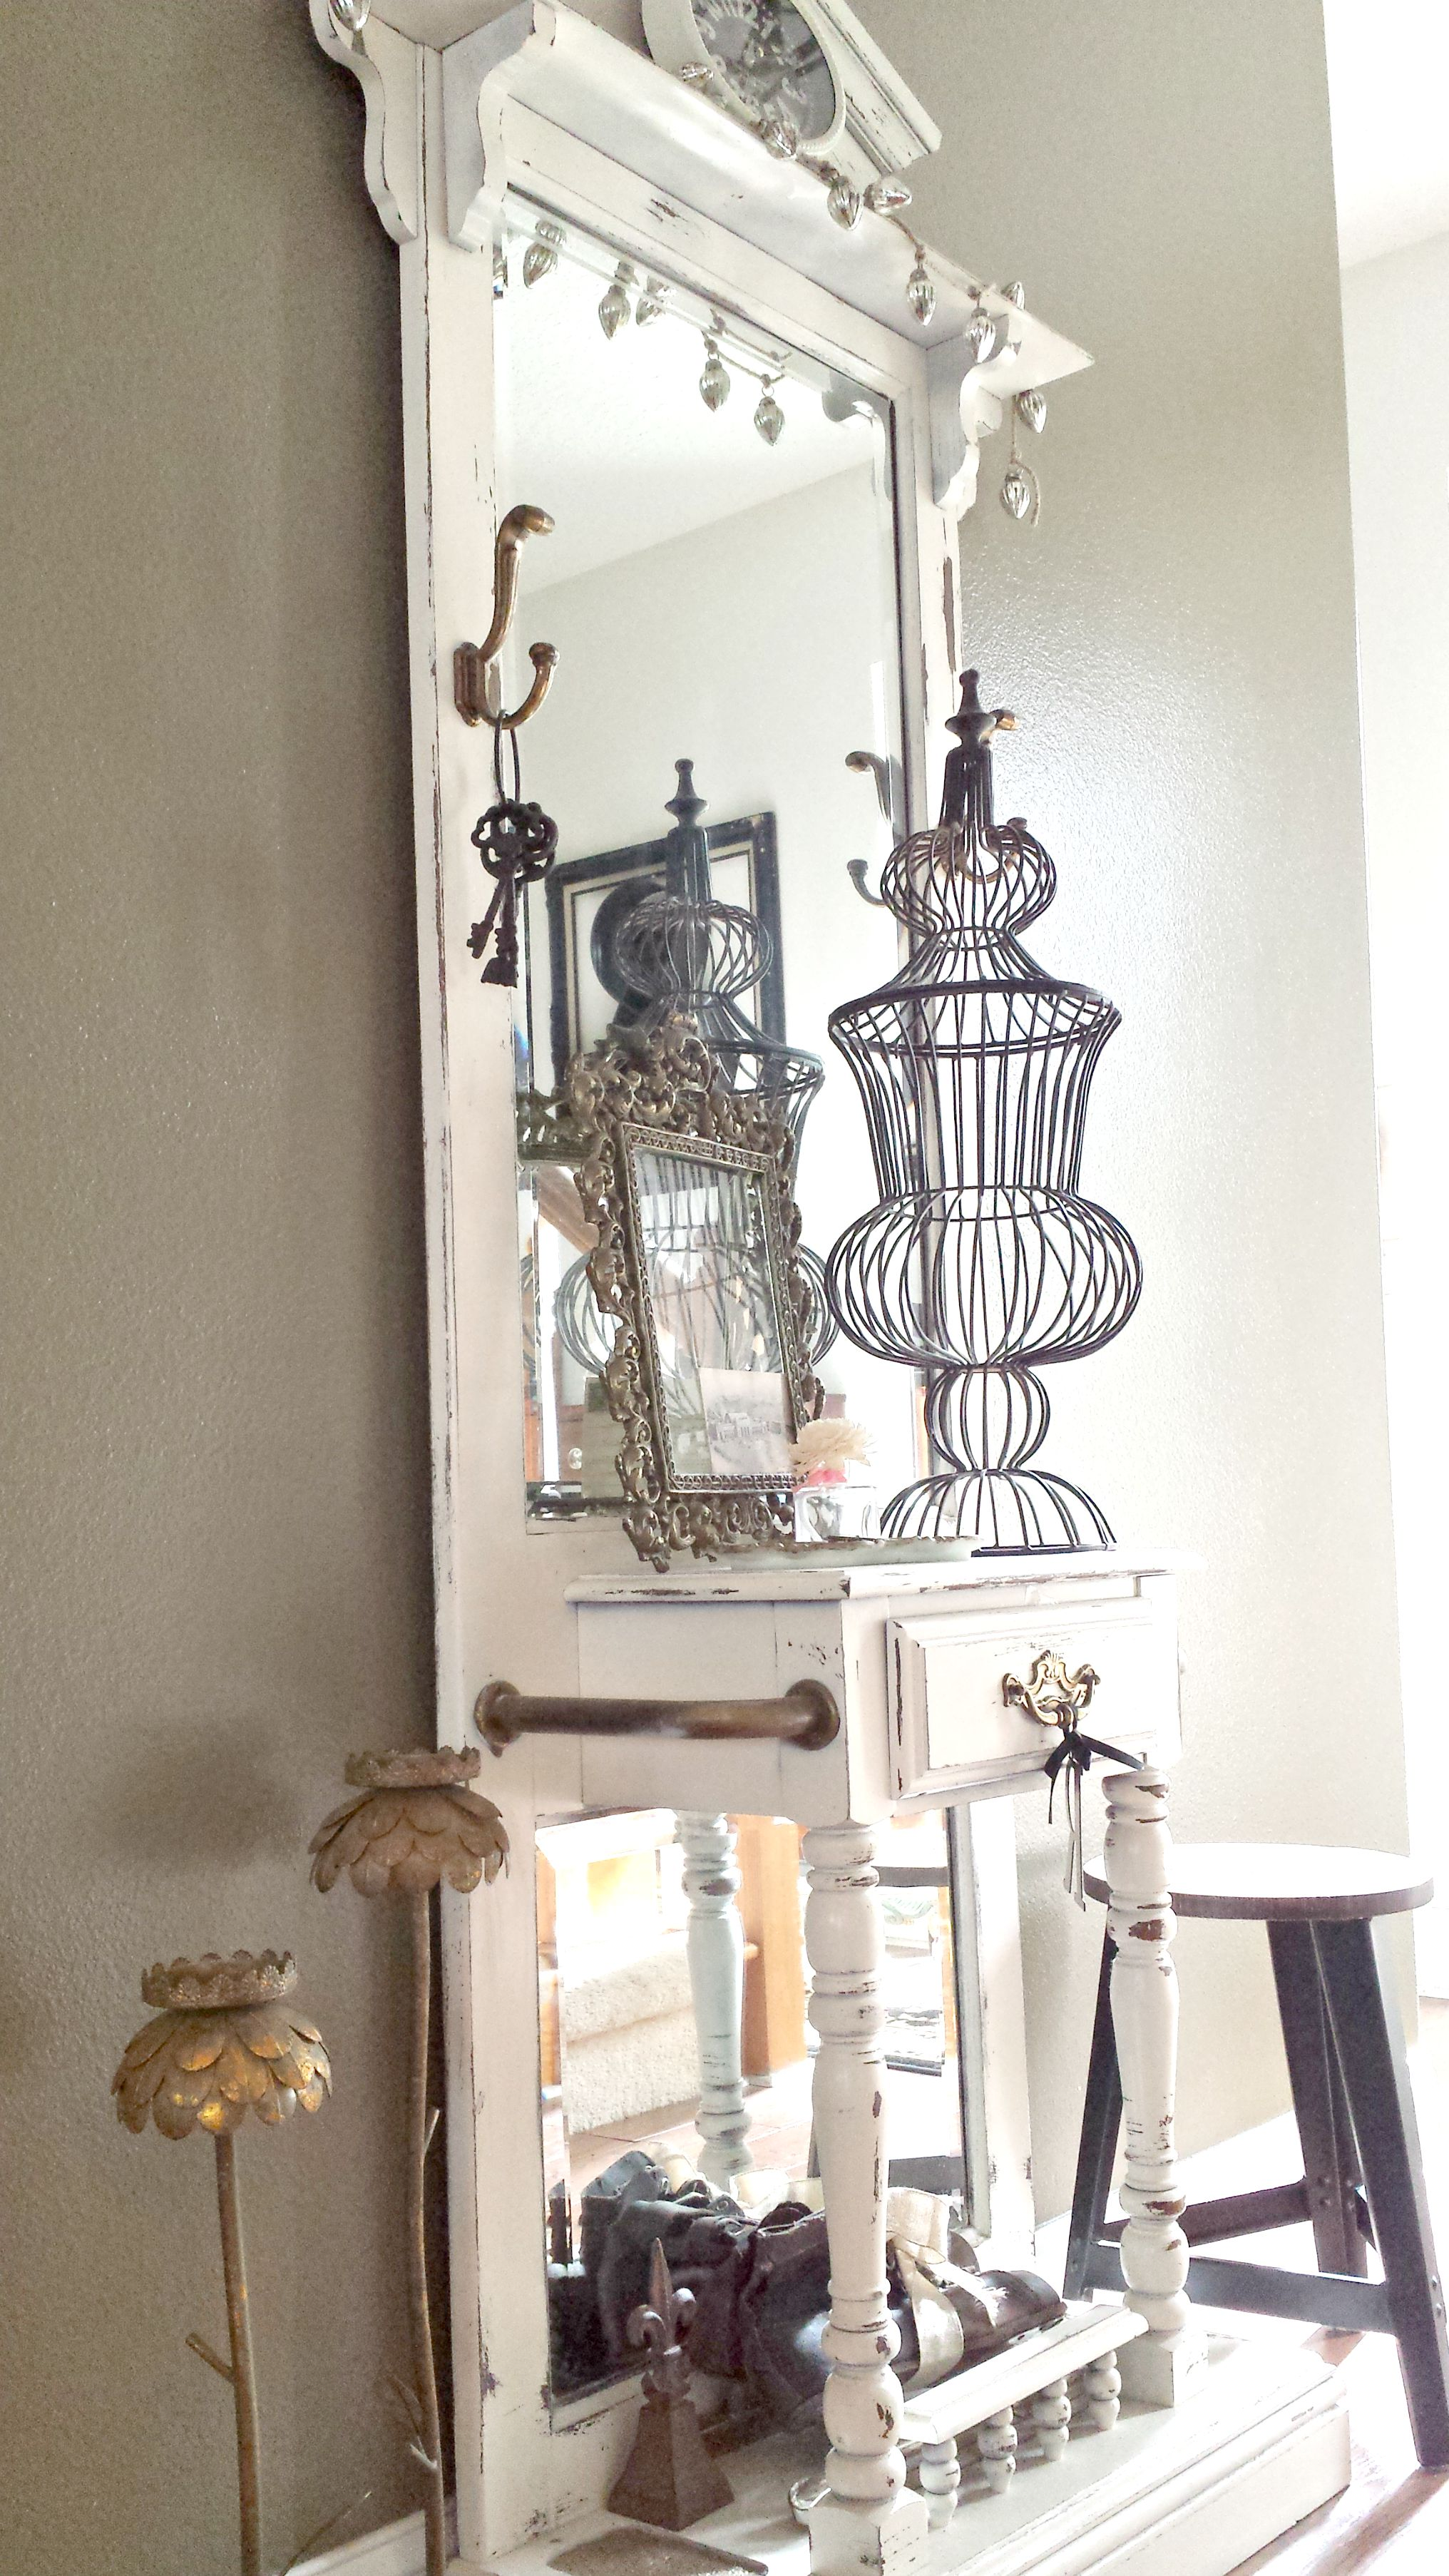 Victorian Decorating Blog Stylemutt Home Your Home Decor Resource For All Breeds Of Style